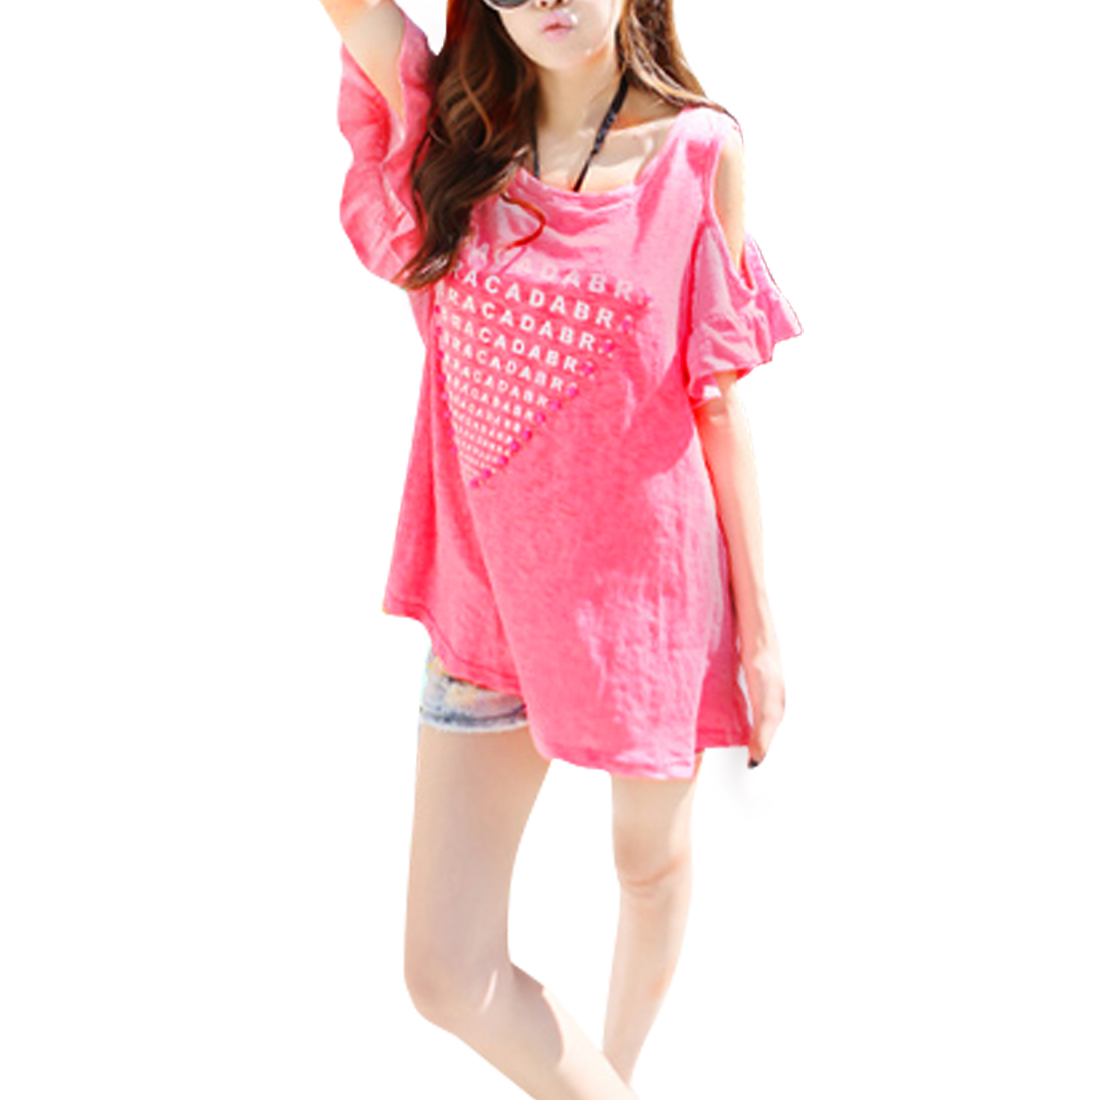 Women Pink Cut Out Design Shoulder Round Neck Letter Print Tunic Shirt S